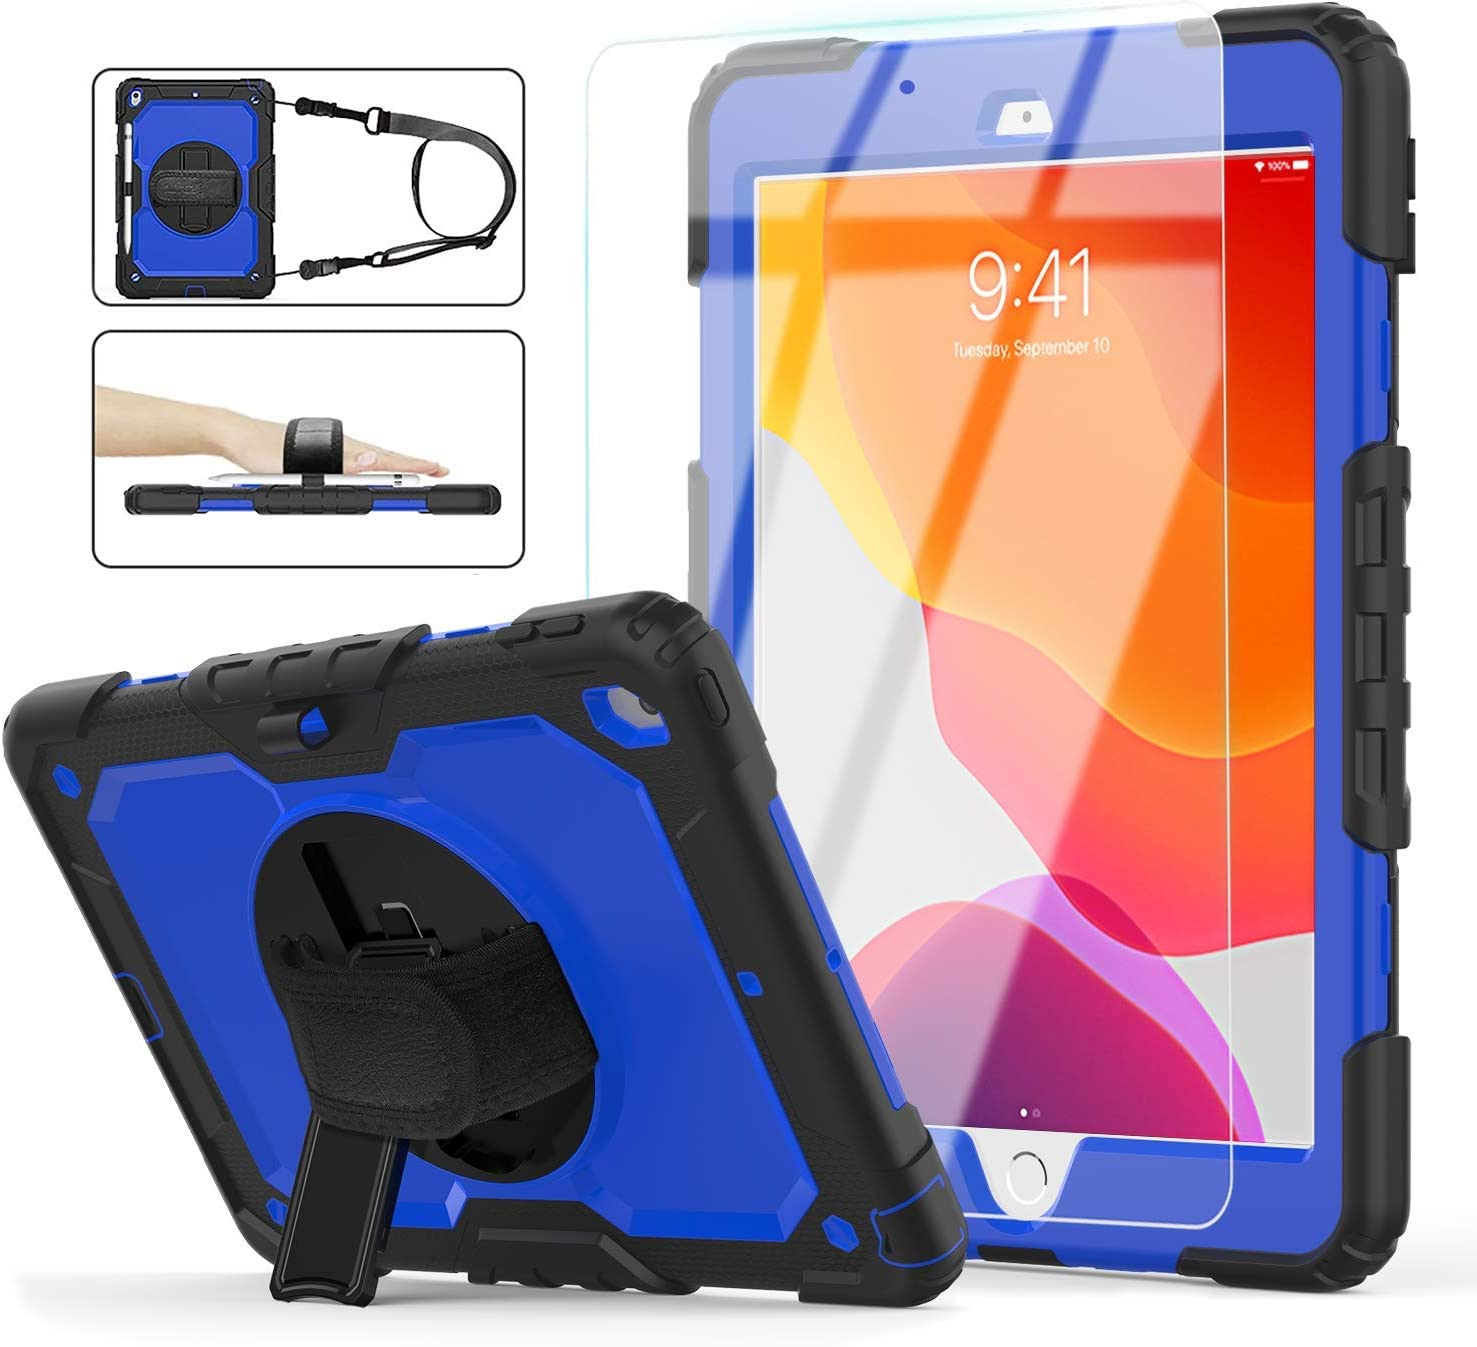 iPad 8th/7th Generation Case, iPad 10.2 Case 2020/2019, [360°Rotatable Hand Strap & Kickstand] ambison Full Body Protective Case with Tempered Glass Screen Protector, Pencil Holder (Blue & Black)